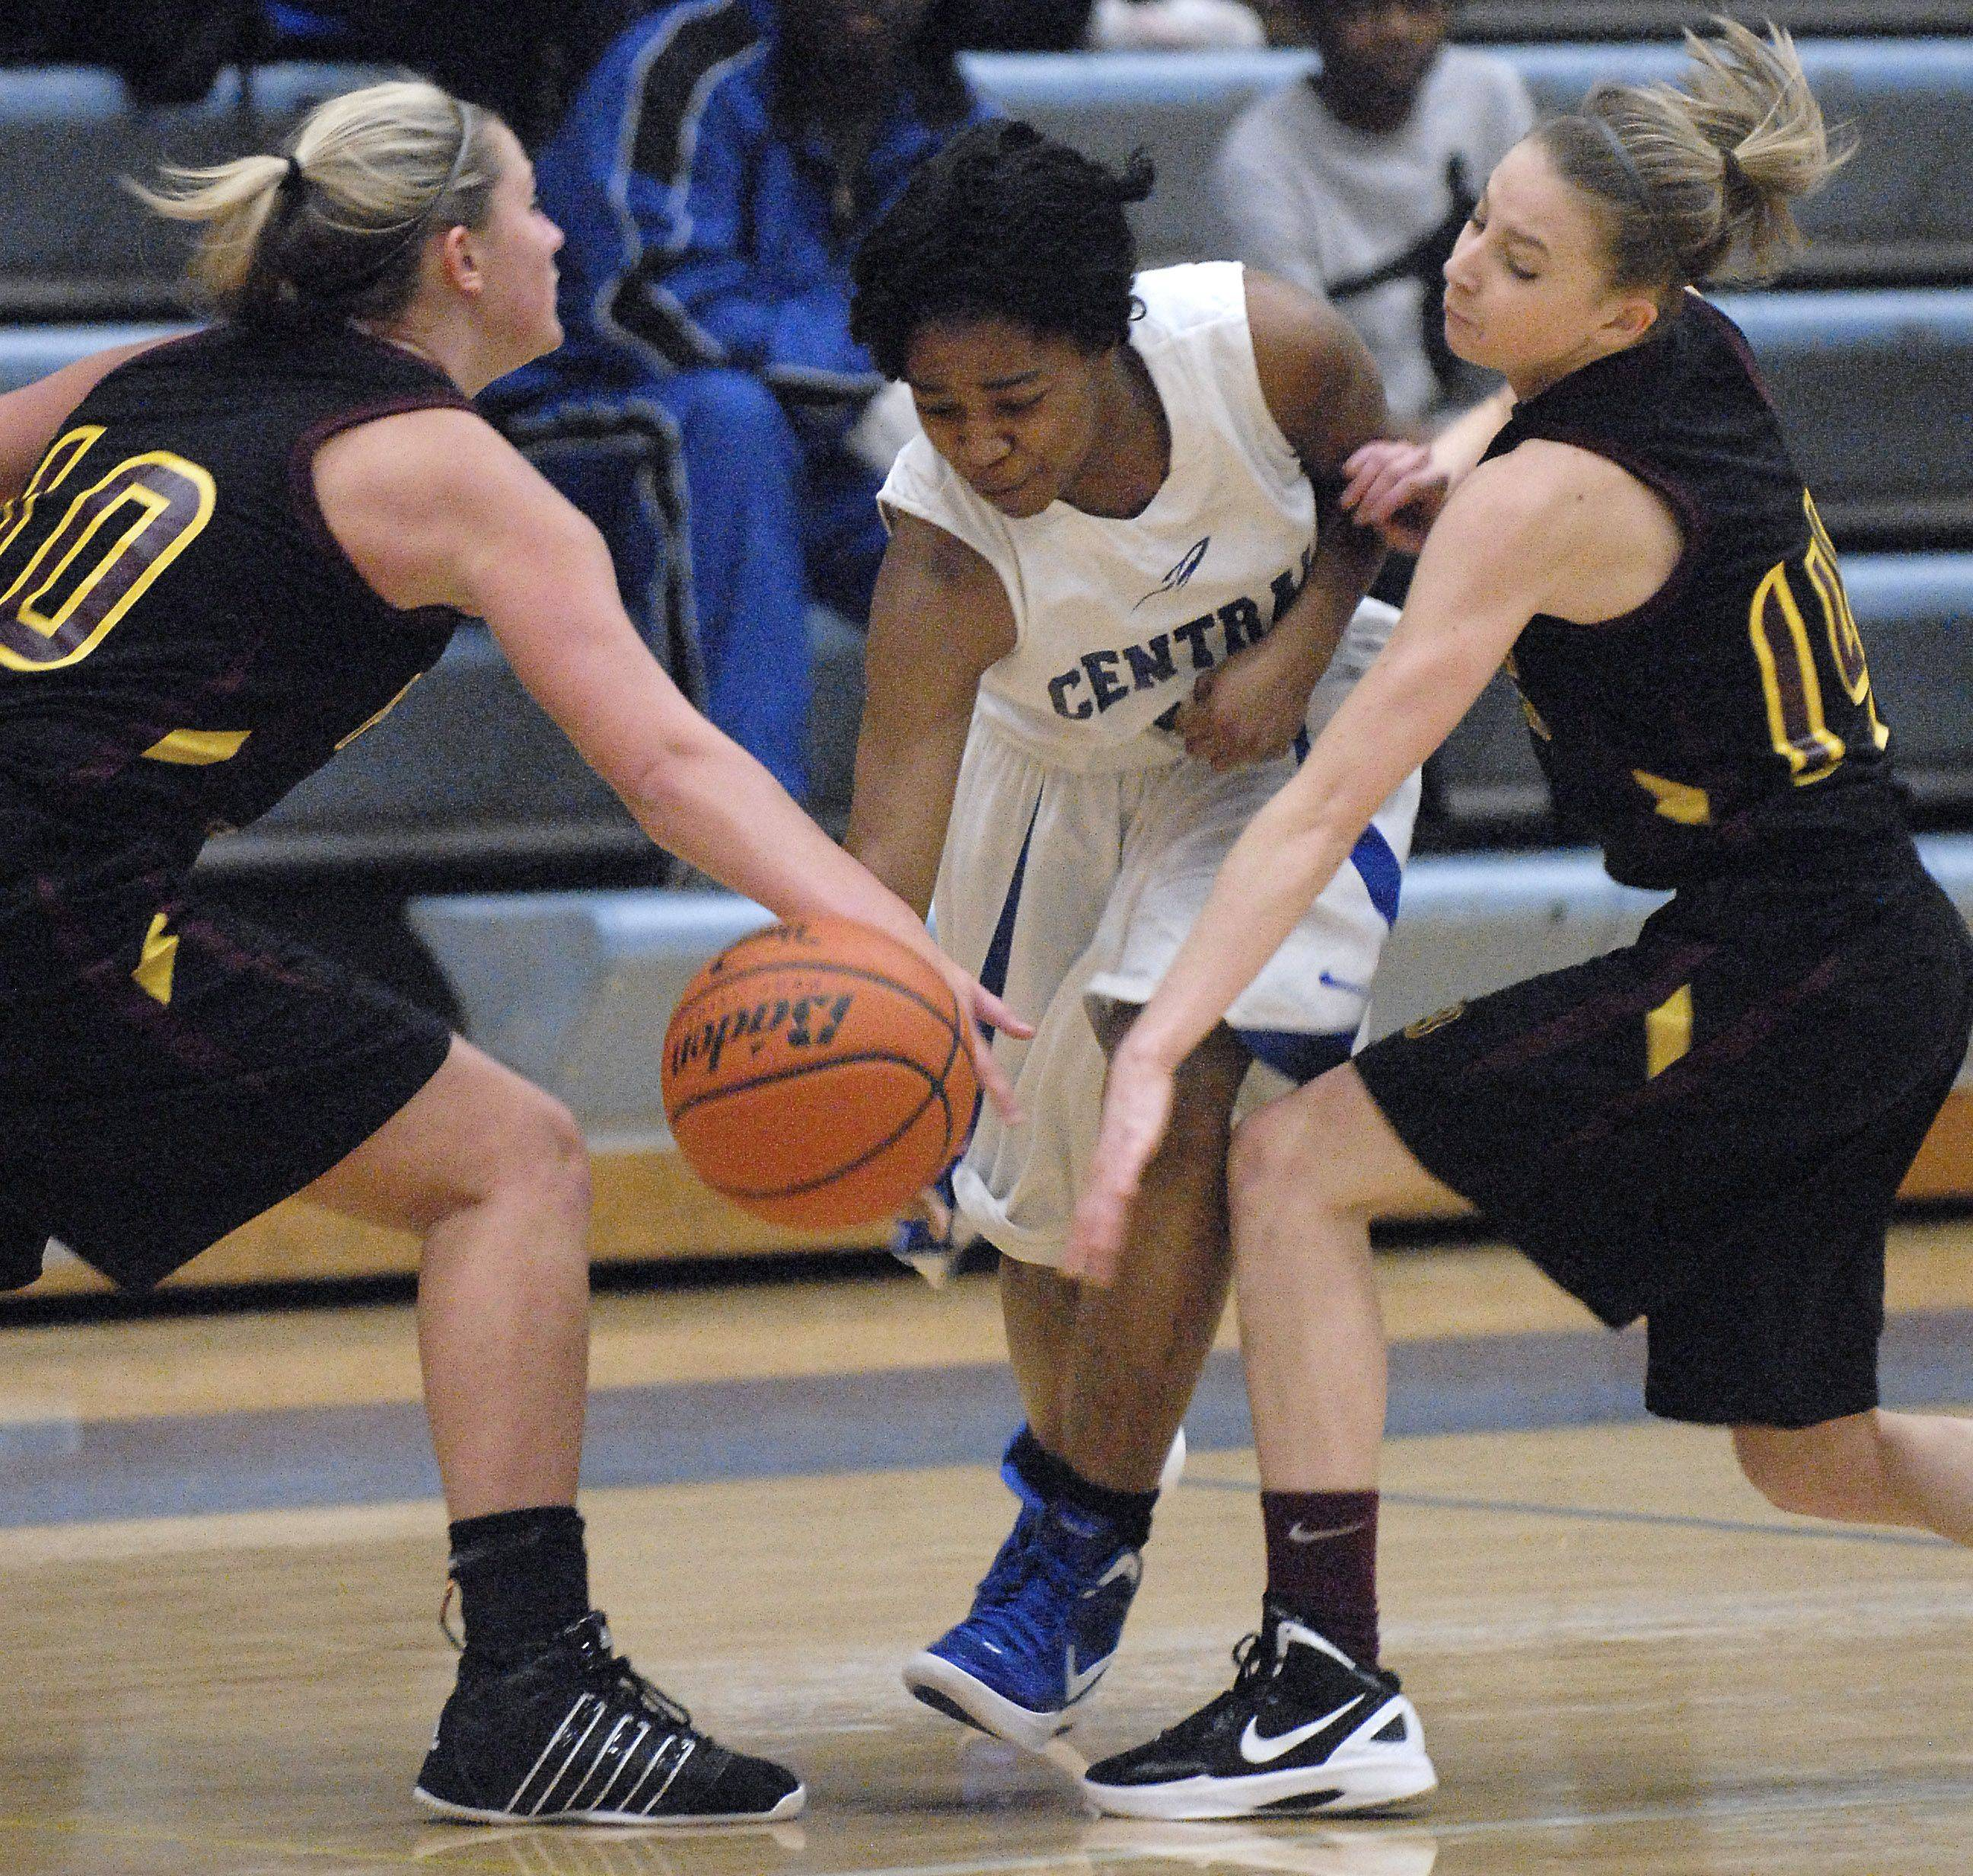 Burlington Central's Erica Haynes busts through a block by Richmond-Burton's Alex Callanan, left, and Erin Thomas in the first quarter on Saturday, January 14.